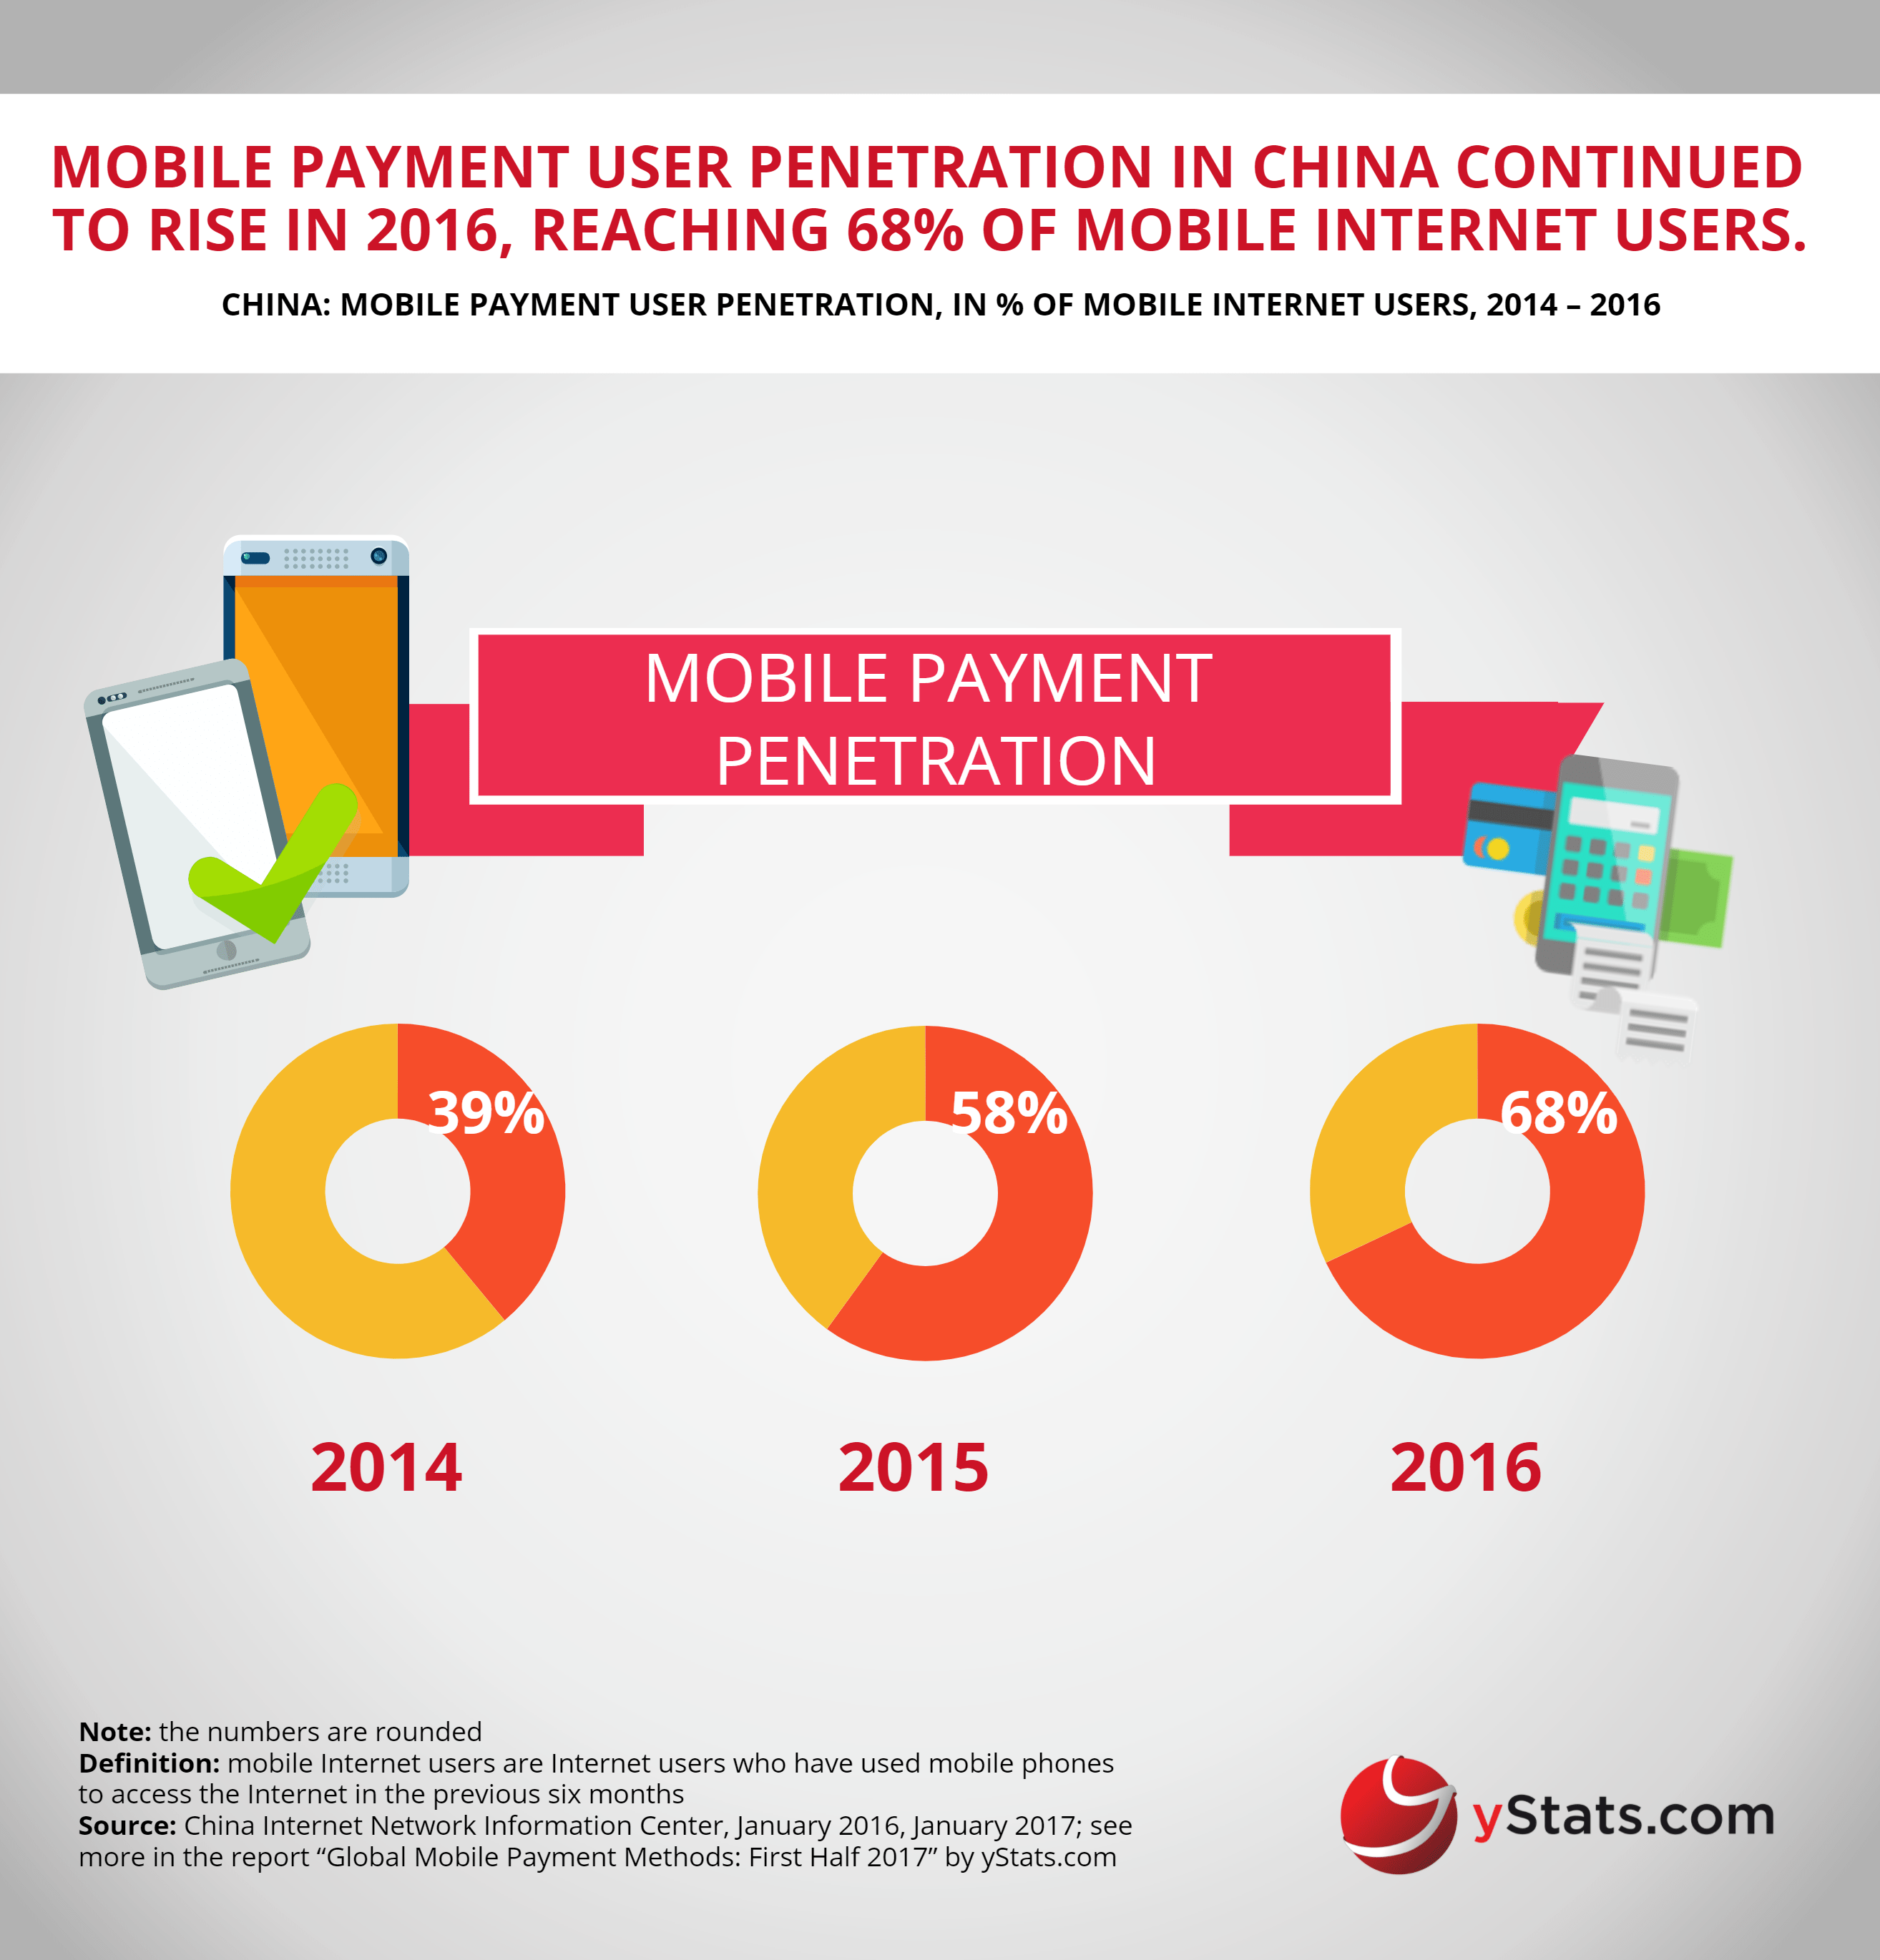 mobile payment penetration in china 2014 2015 2016